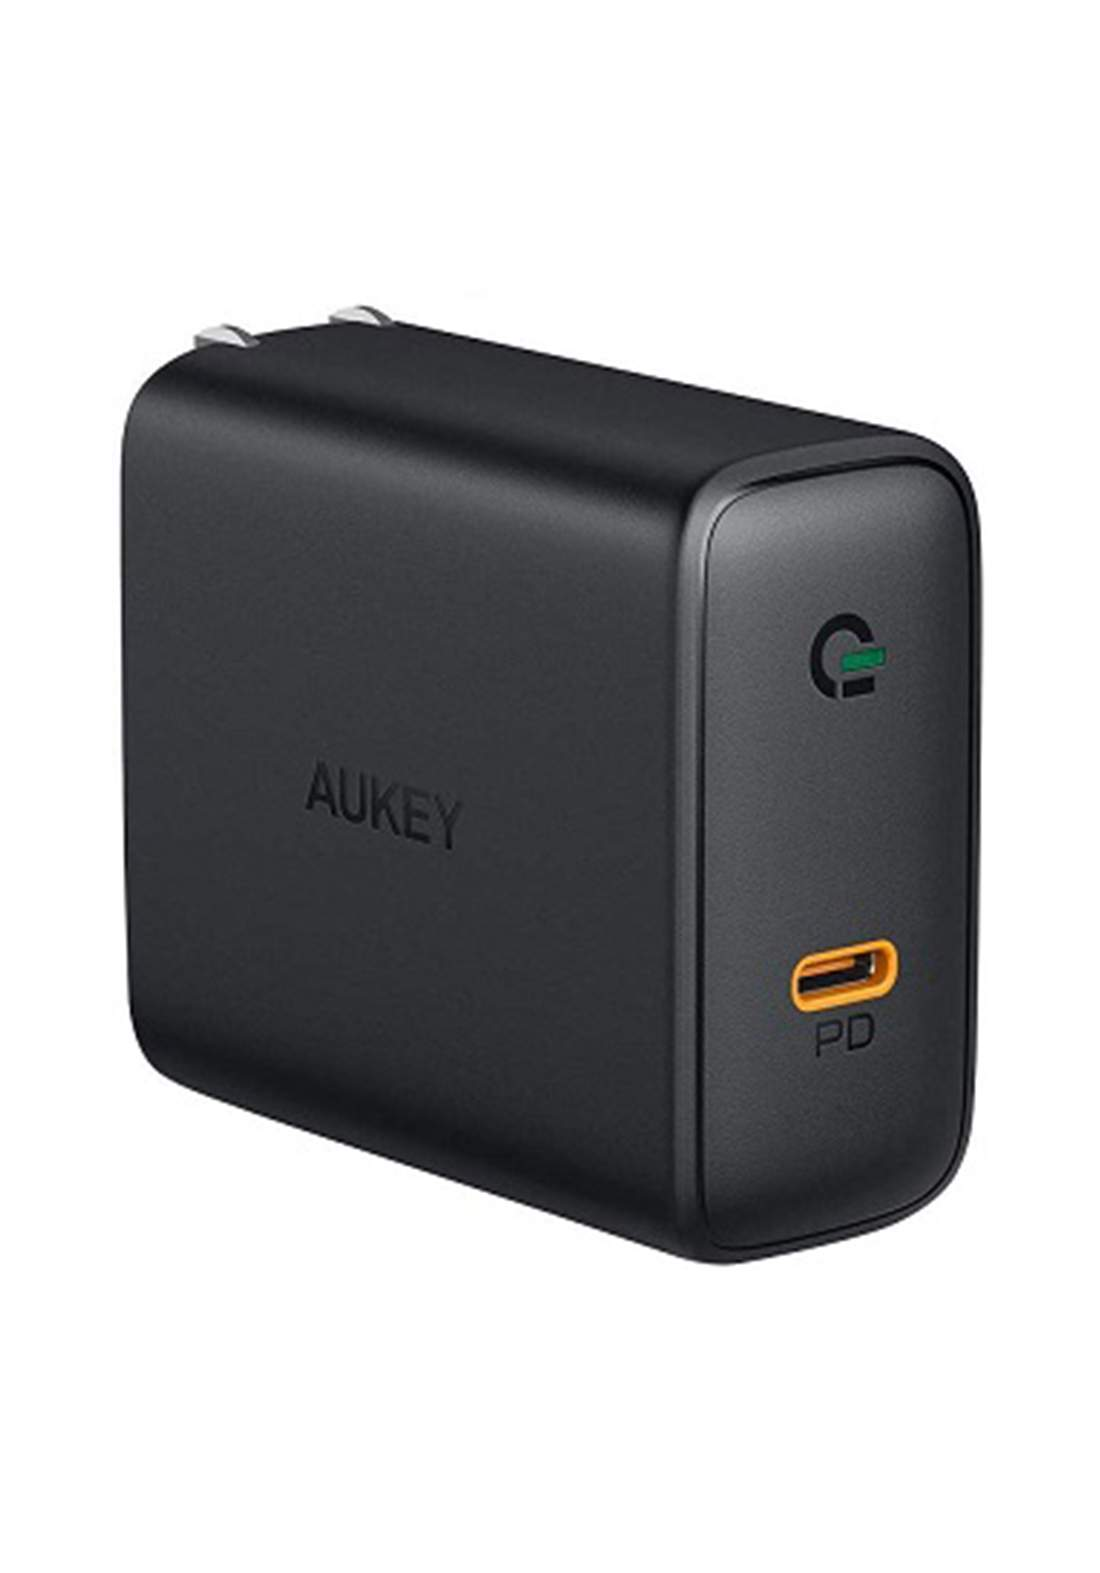 AUKEY PA-D4  60W USB-C Power Delivery Charger with GaN Power Tech  - Black  شاحن